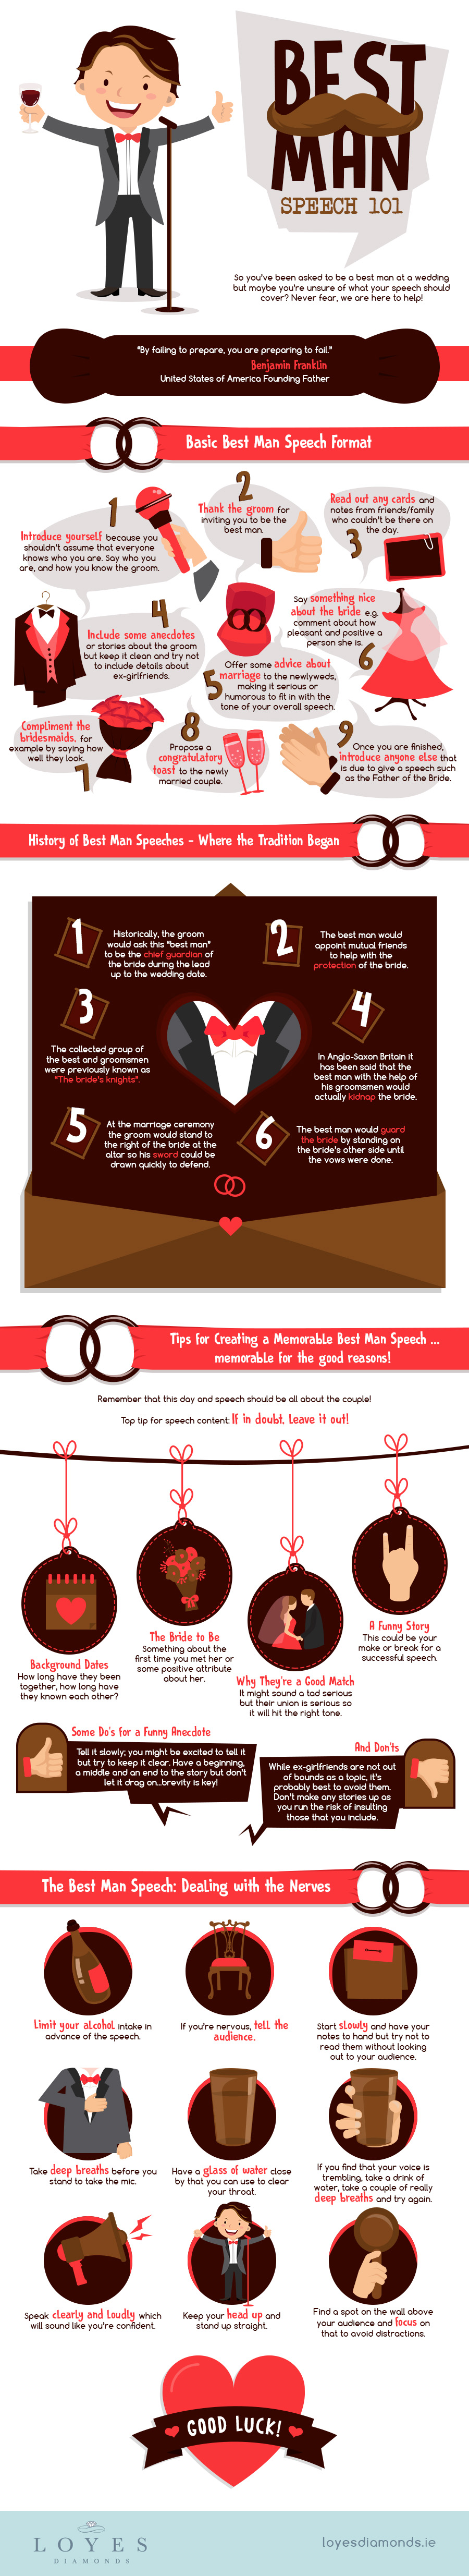 Best Man Speech Advice in an infographic